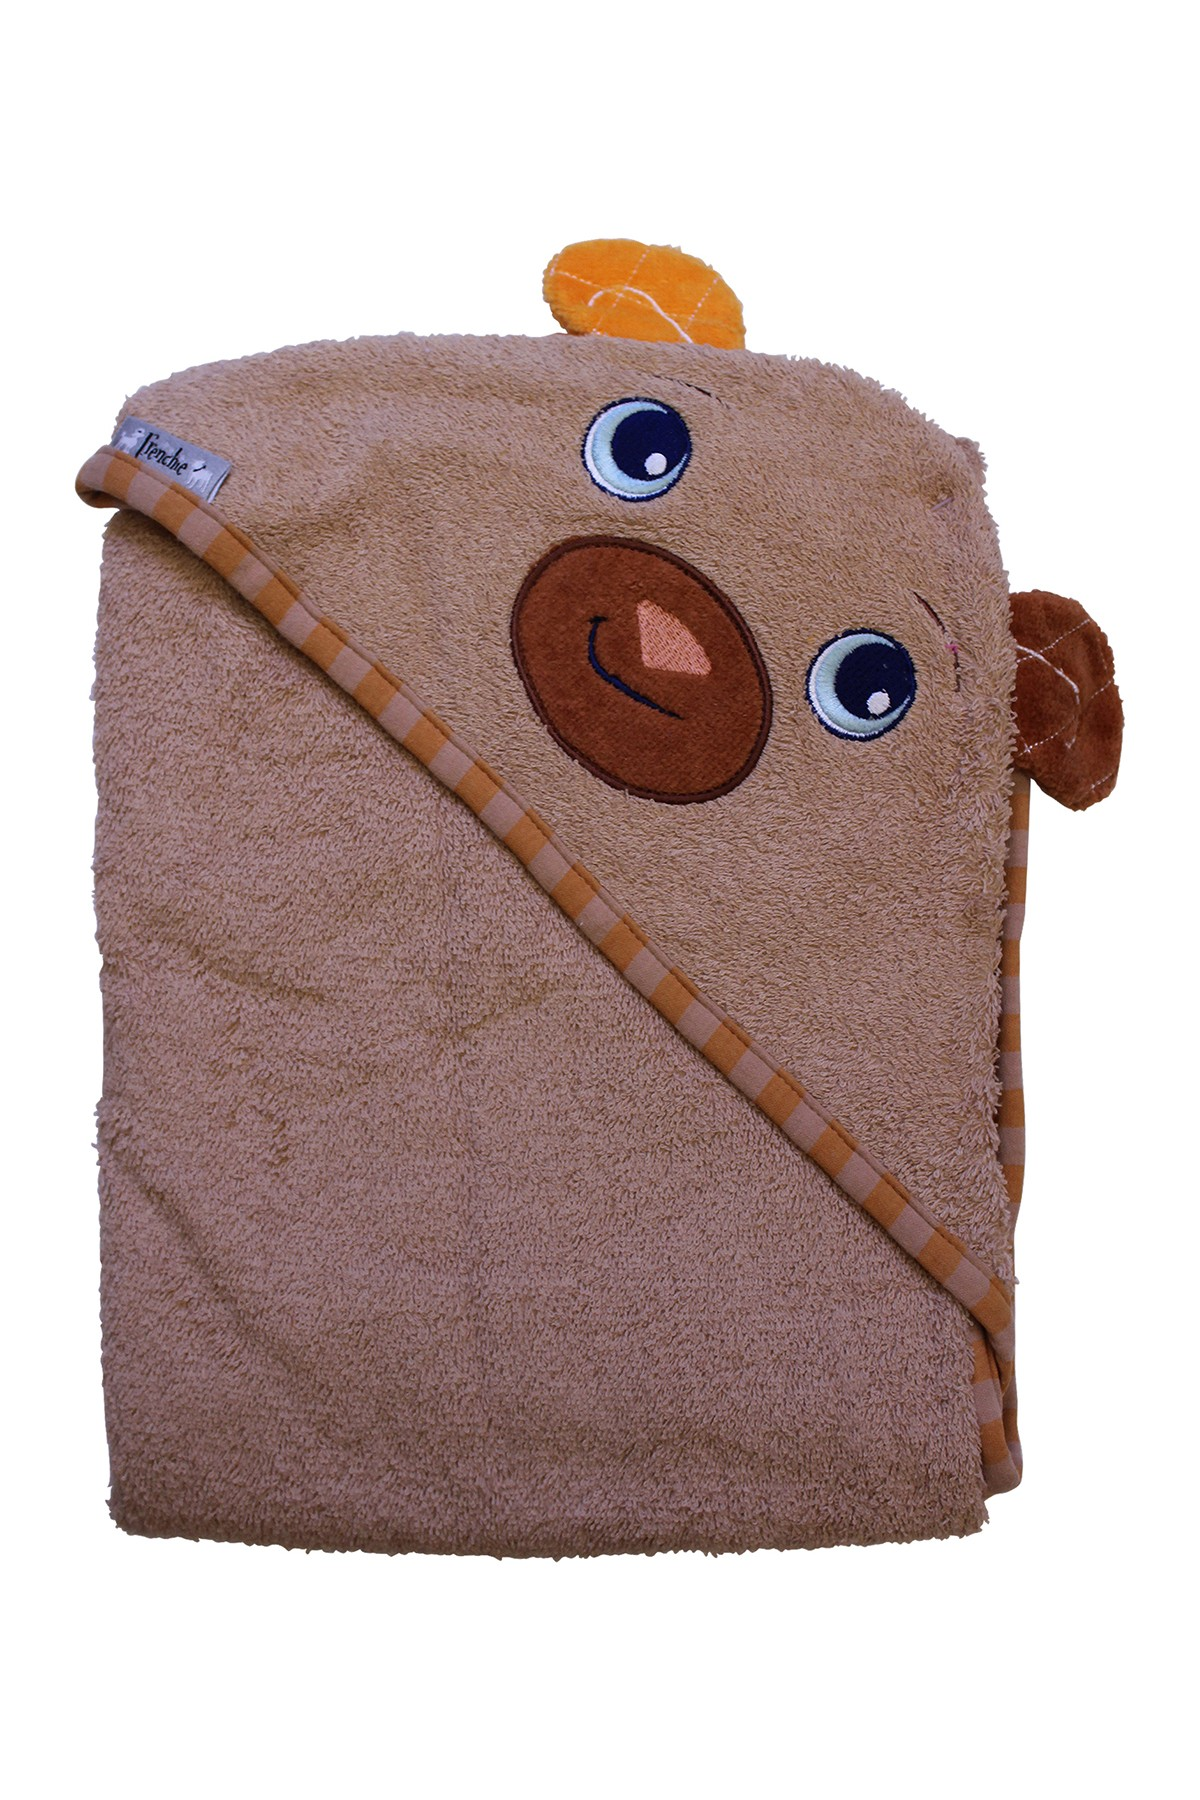 Boy Frenchie Mini Couture Bear Hooded Towel Set 3 Pack